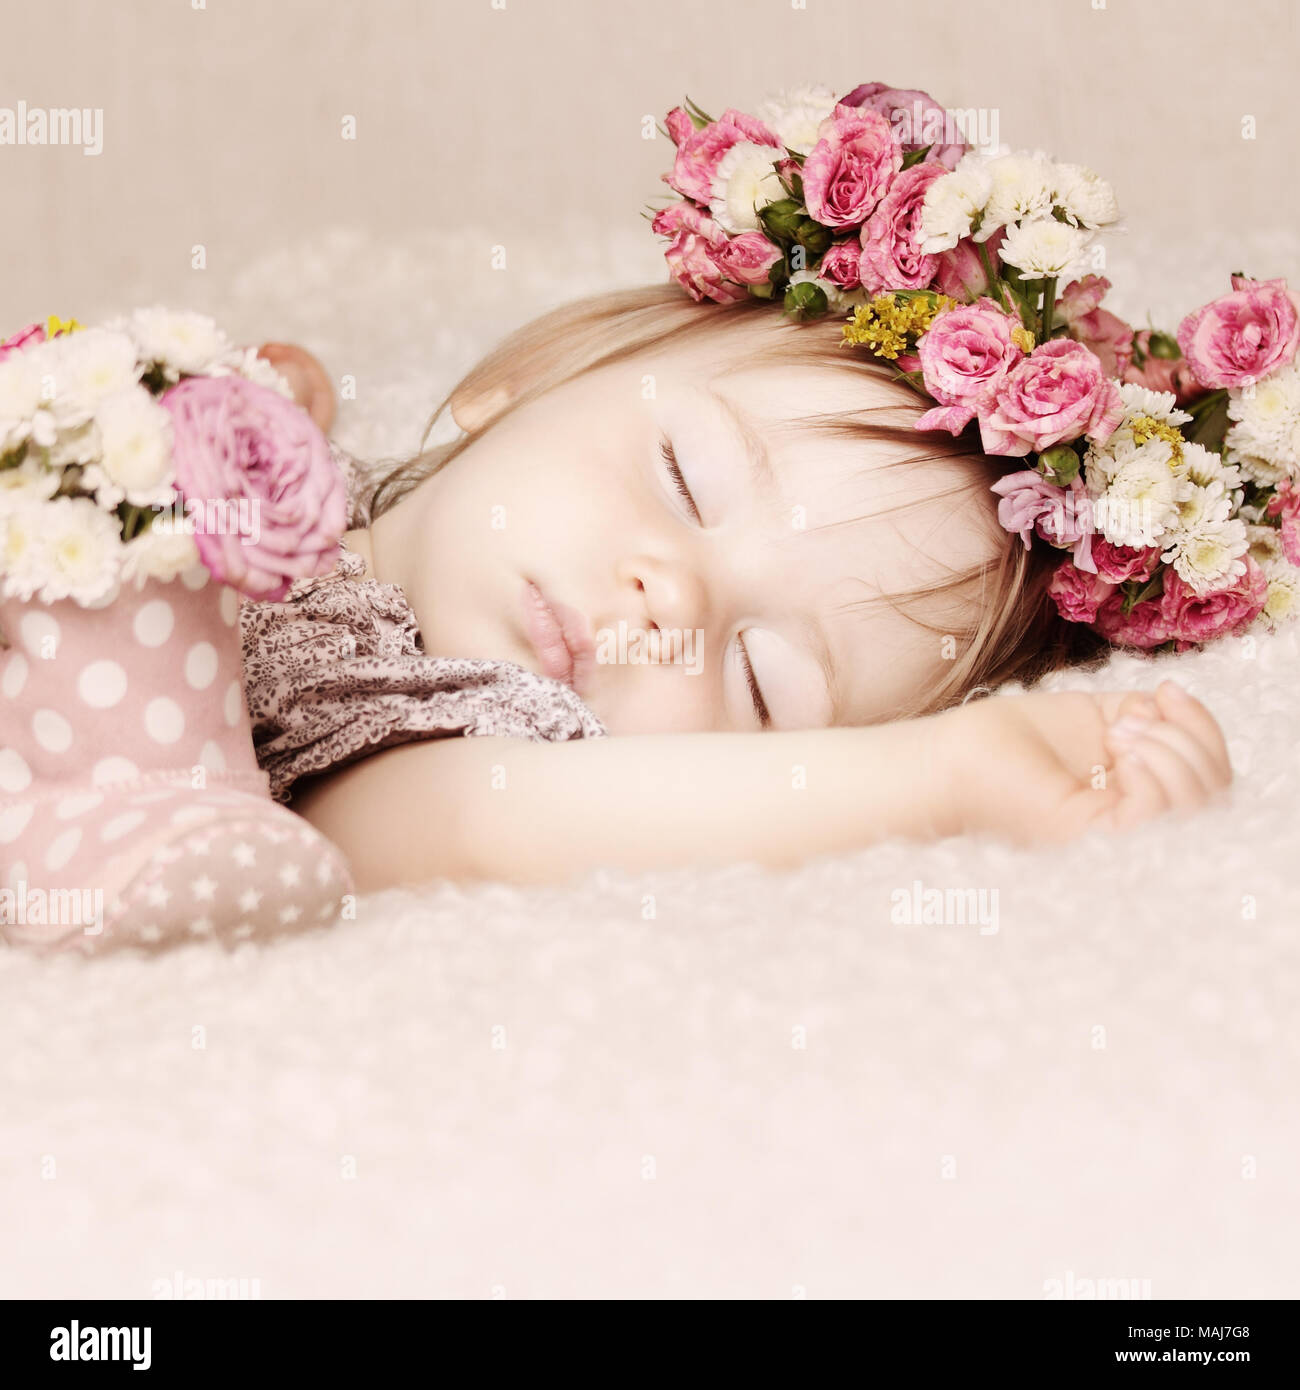 Sleeping Baby Girl In Flowers Beautiful Vintage Card Background Stock Photo Alamy